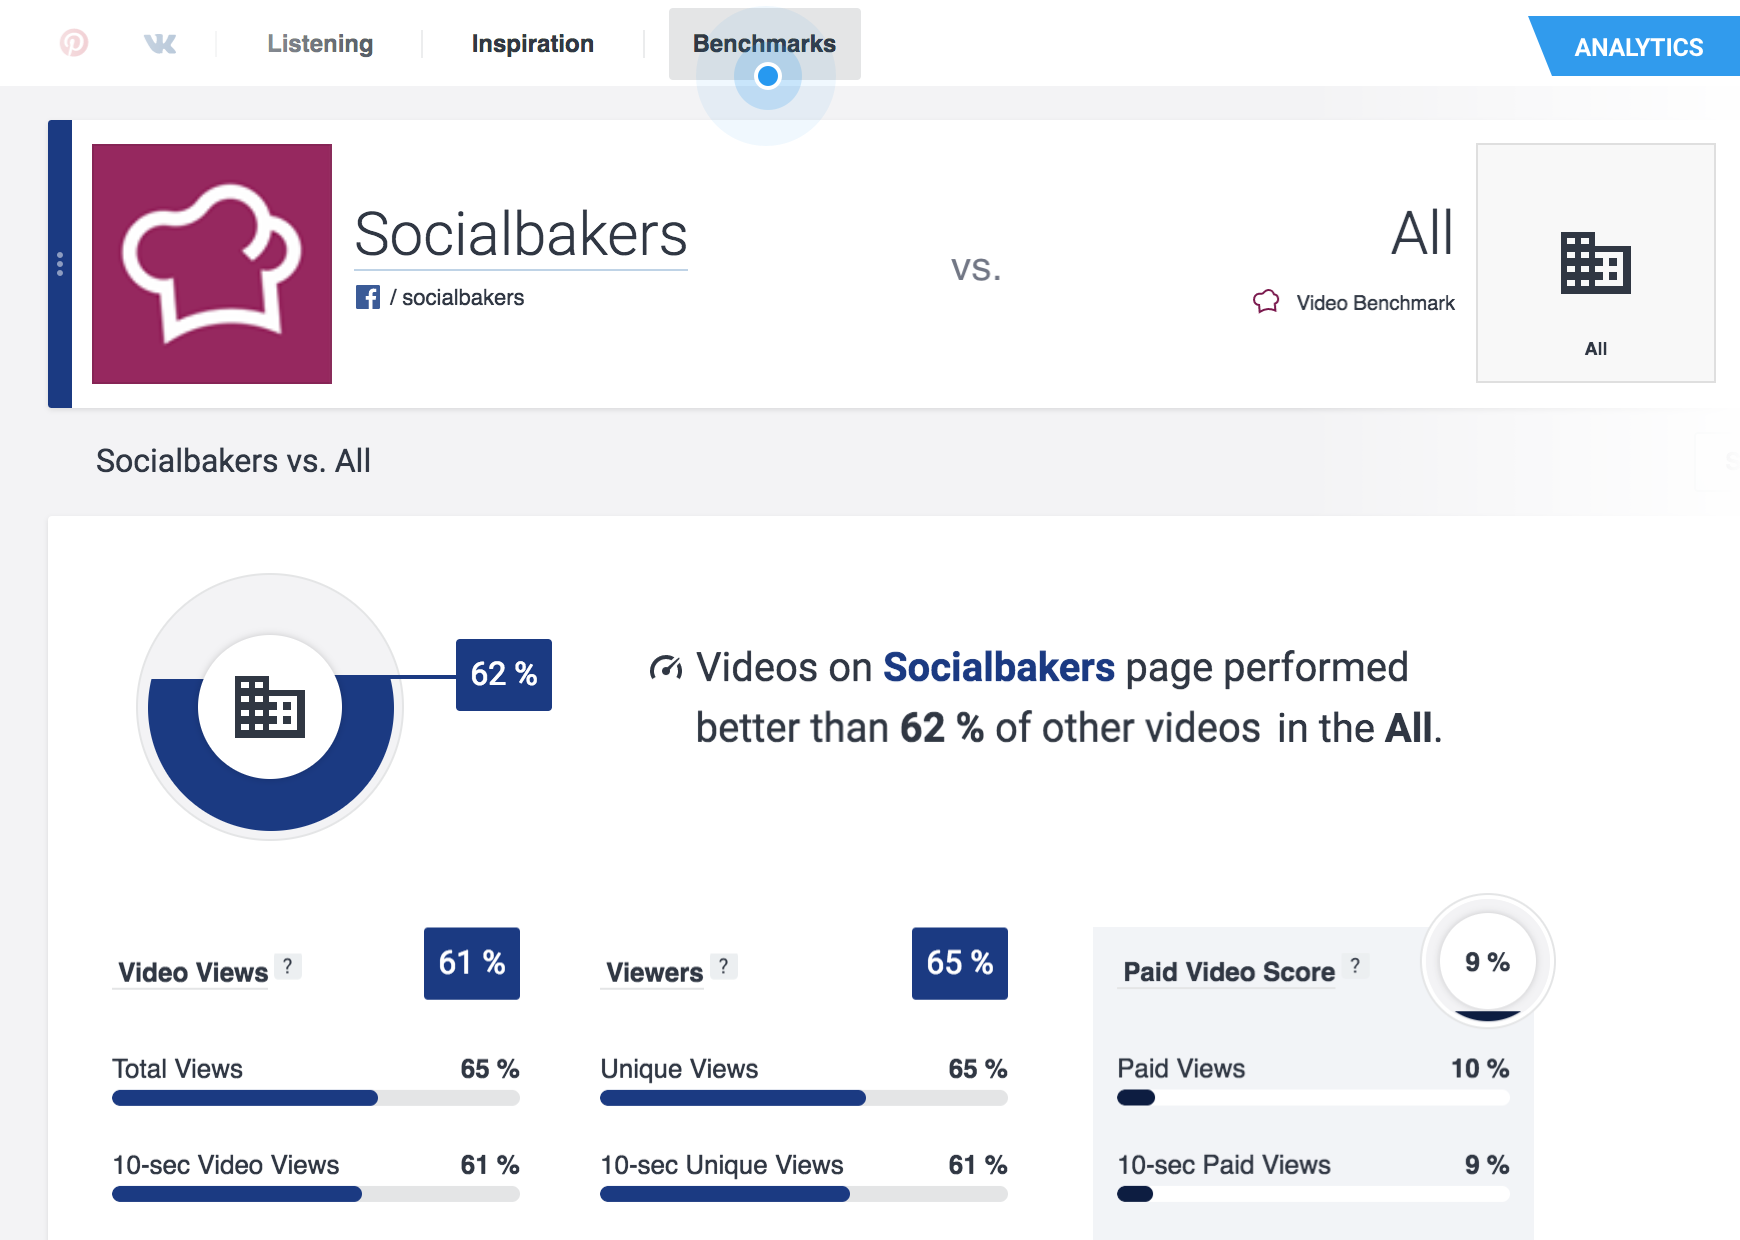 Socialbakers_Video_Benchmark_2x.png